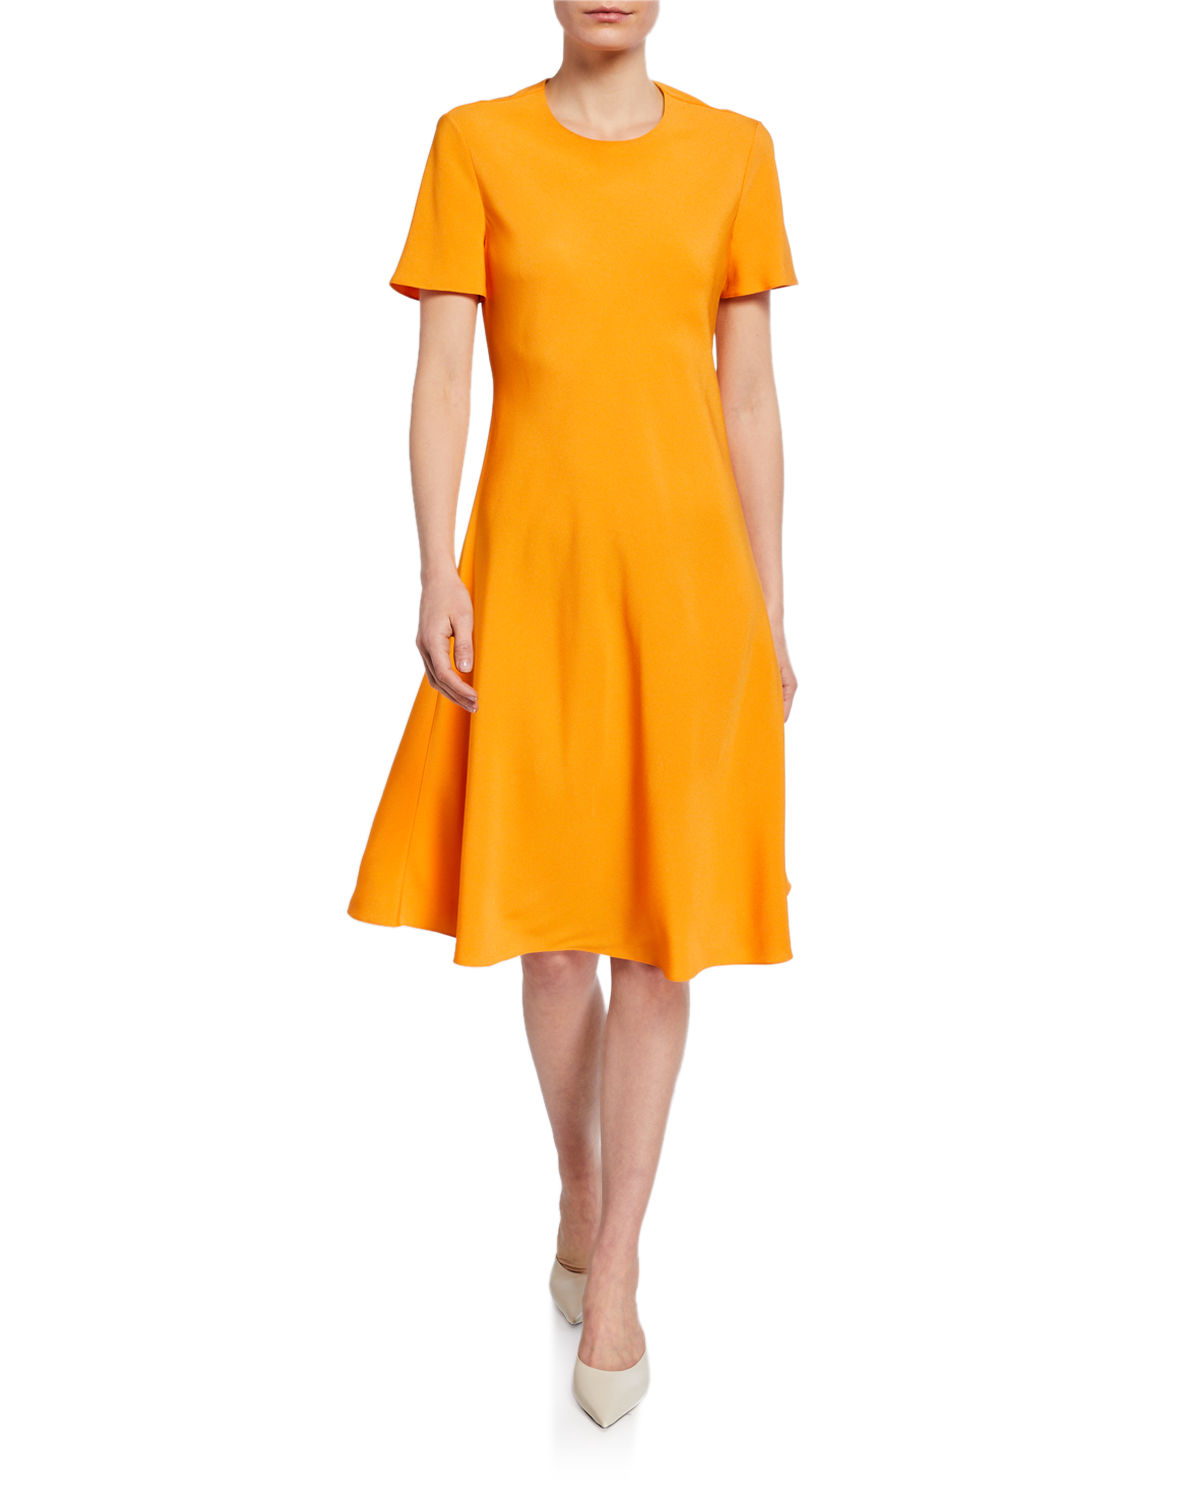 Rosetta Getty Dresses KEYHOLE BIAS T-SHIRT DRESS